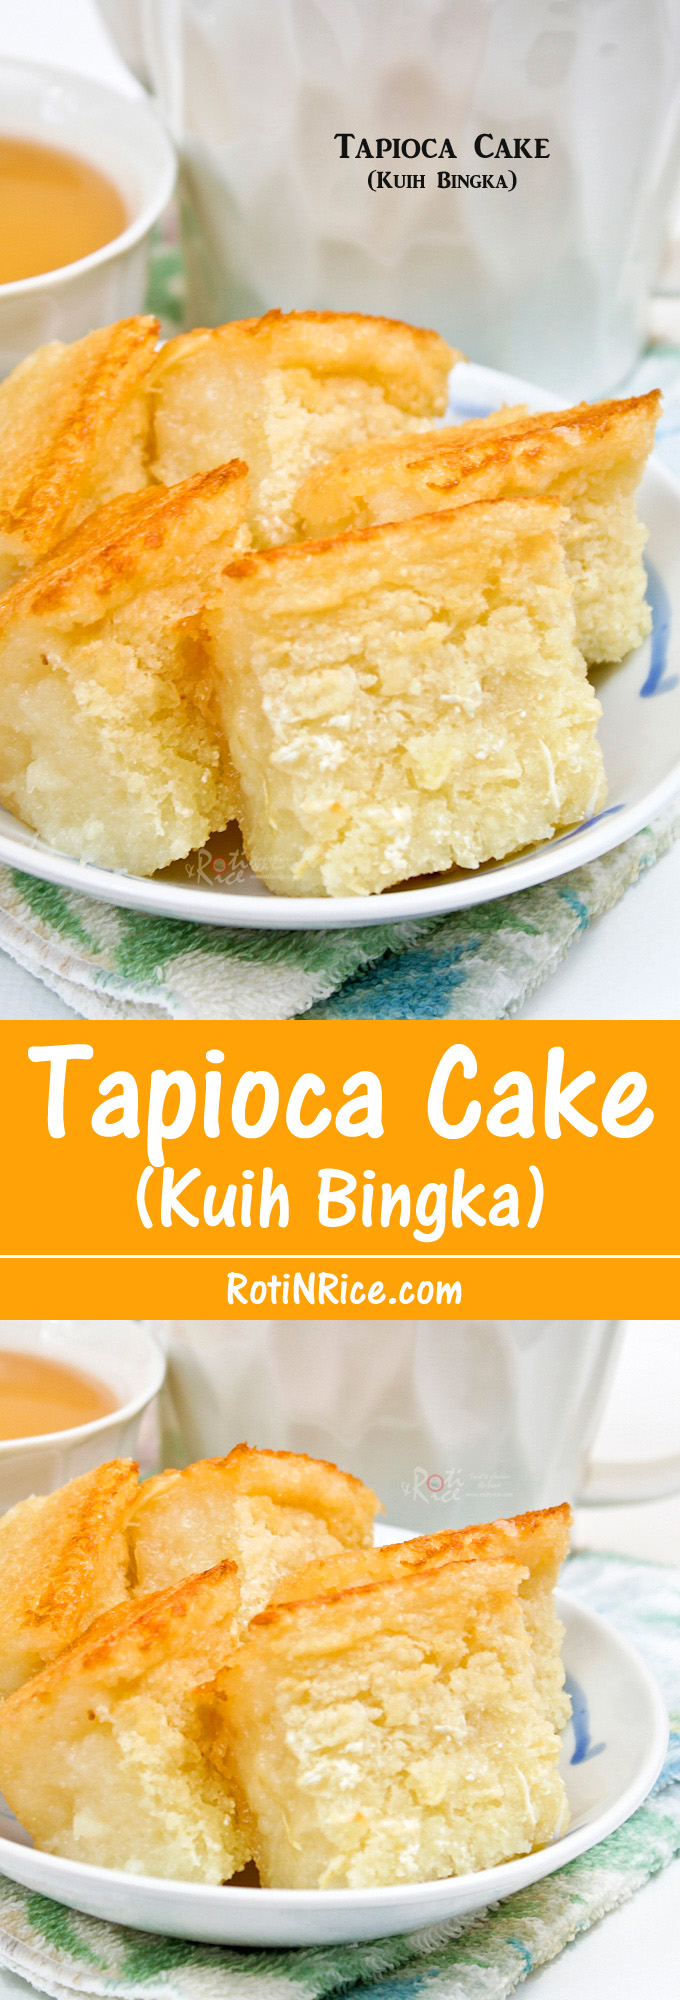 Tapioca Cake (Kuih Bingka), a Malaysian tea time favorite. Very easy to prepare with commercially available grated tapioca. Just mix and bake. | RotiNRice.com